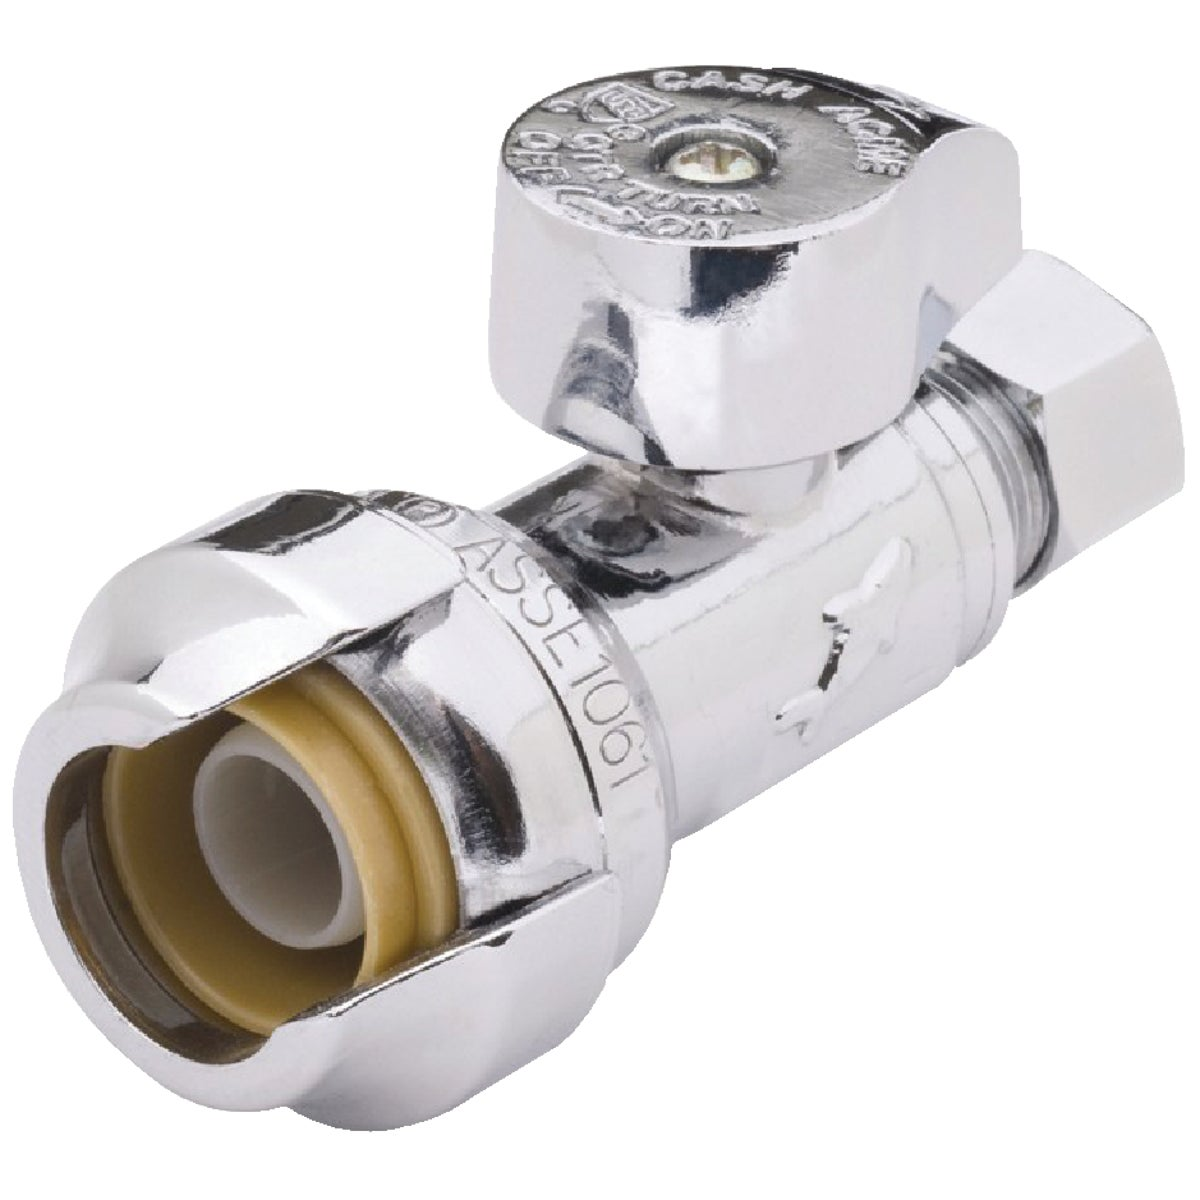 1/2X1/4 SHRK STR VALVE - 23337-0000LF by Cash Acme